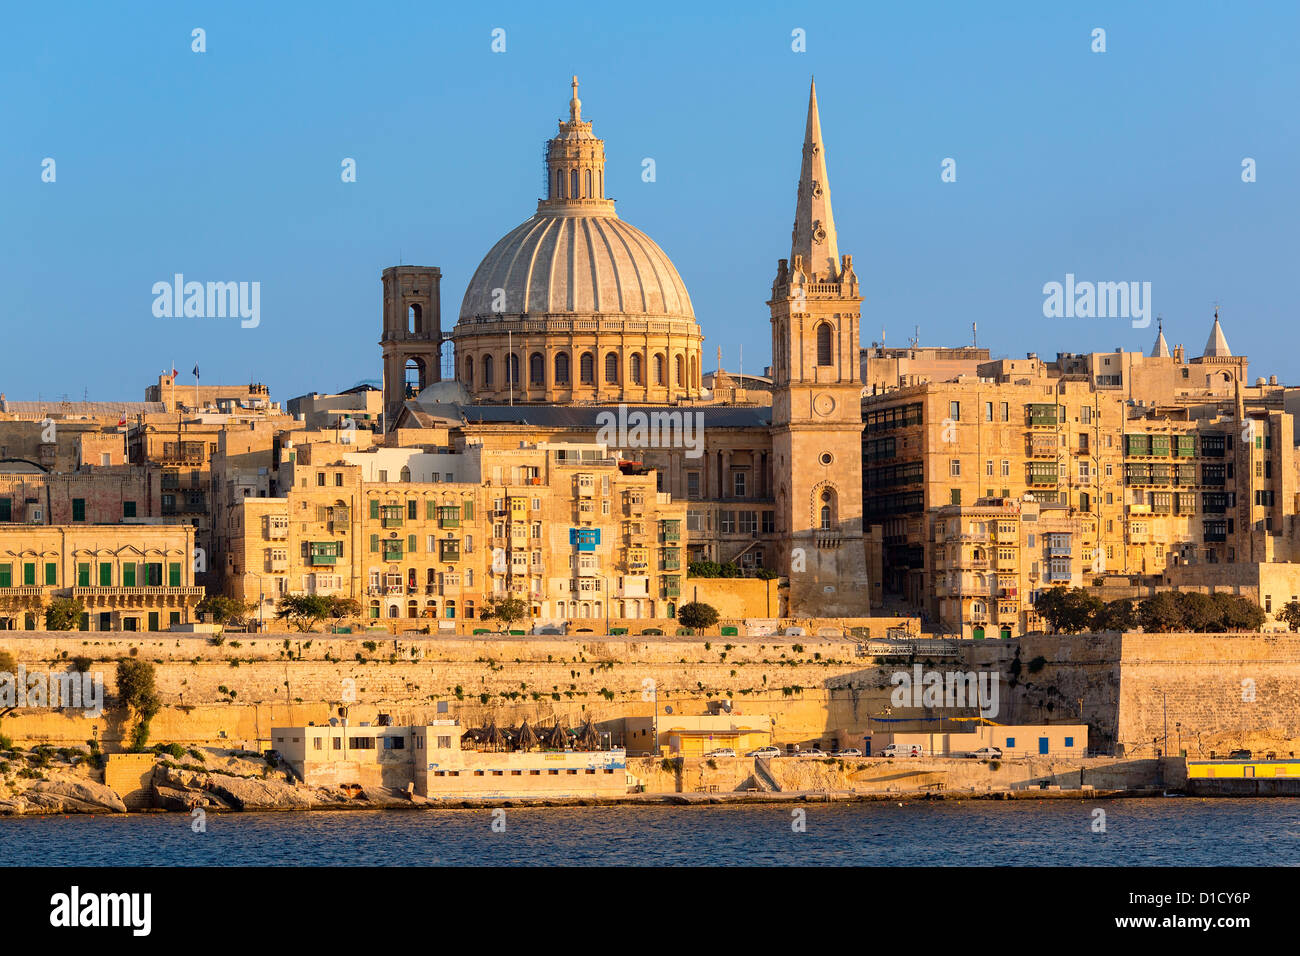 Malta, Valletta, skyline with St. Paul's Anglican Cathedral and Carmelite Church from Sliema, - Stock Image